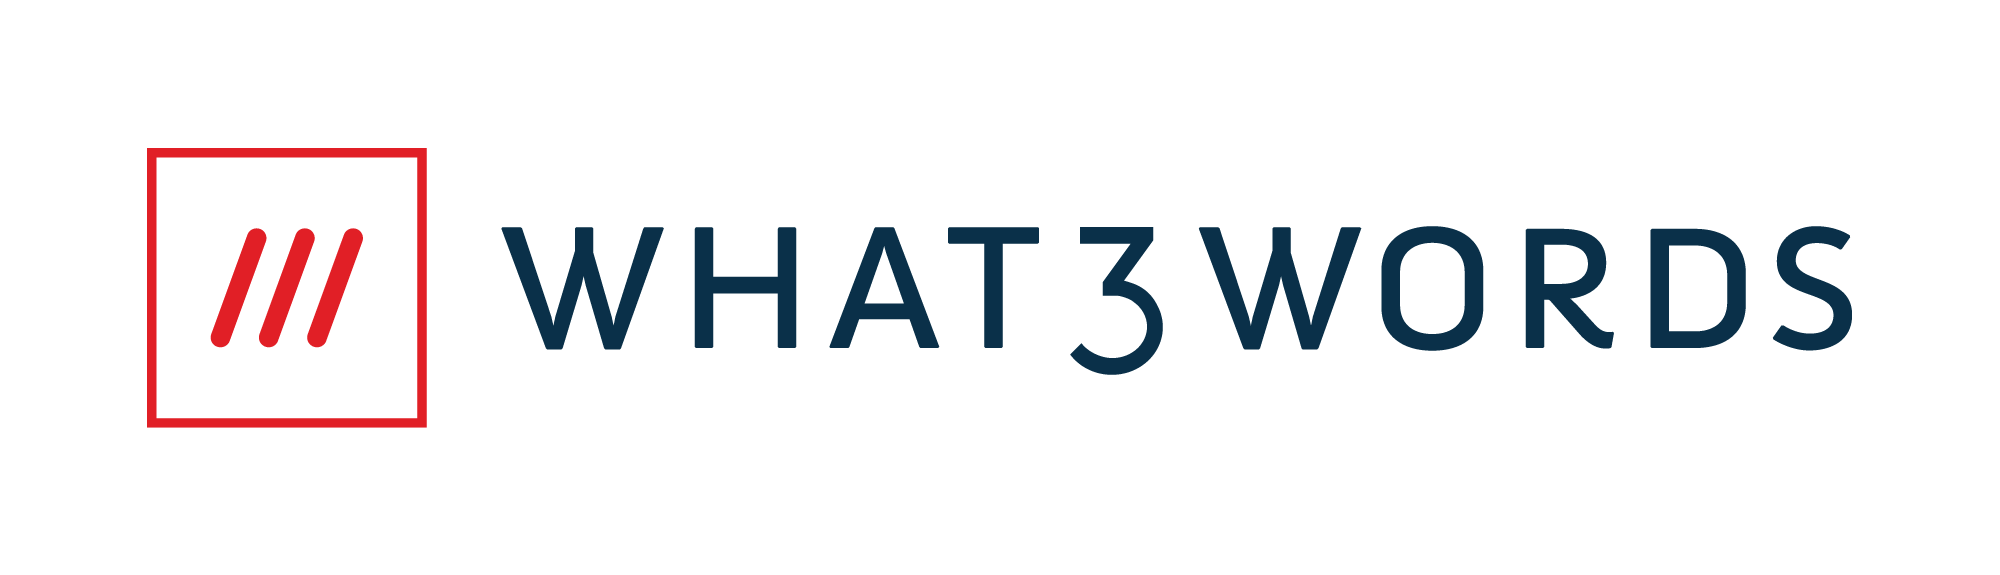 Source:https://what3words.com/